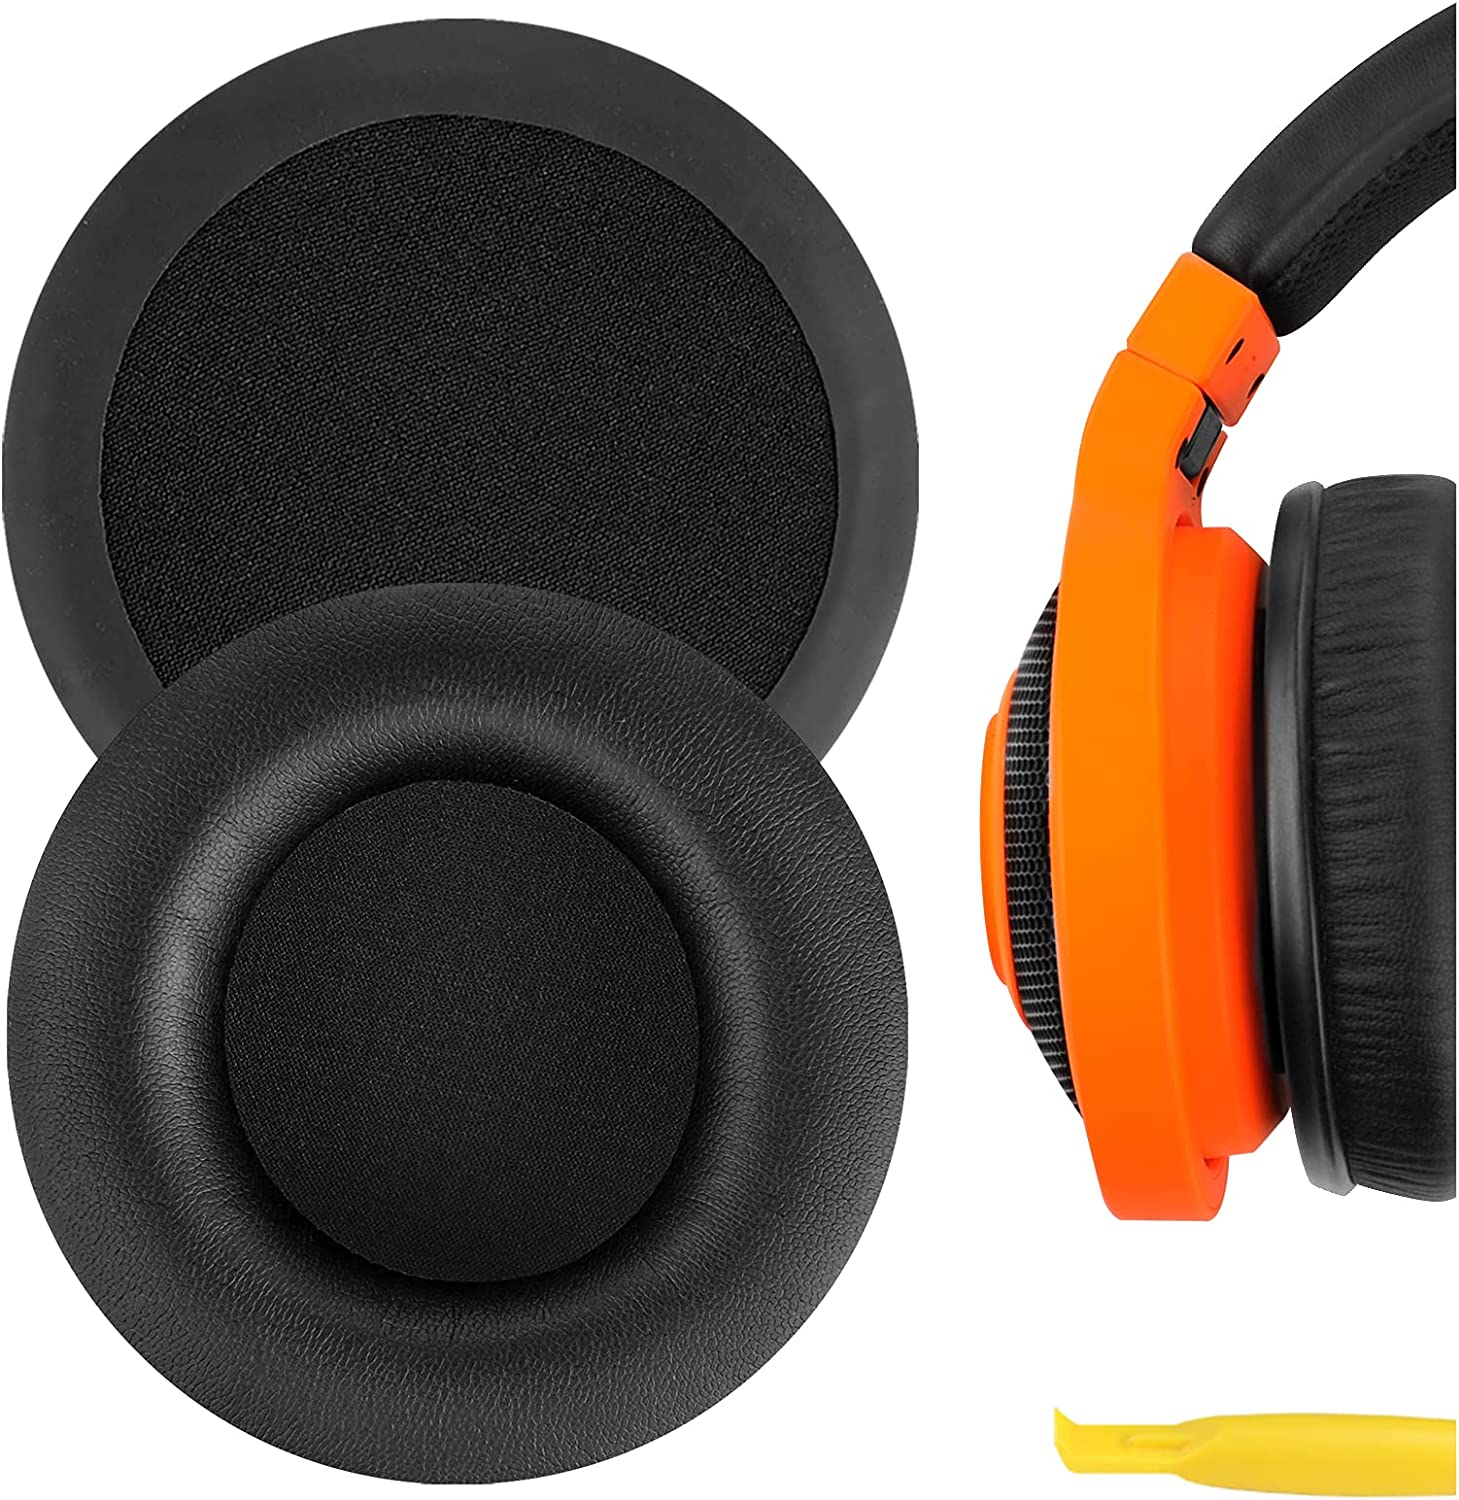 Geekria QuickFit Protein Leather Replacement Razer overseas Pads wholesale Ear for